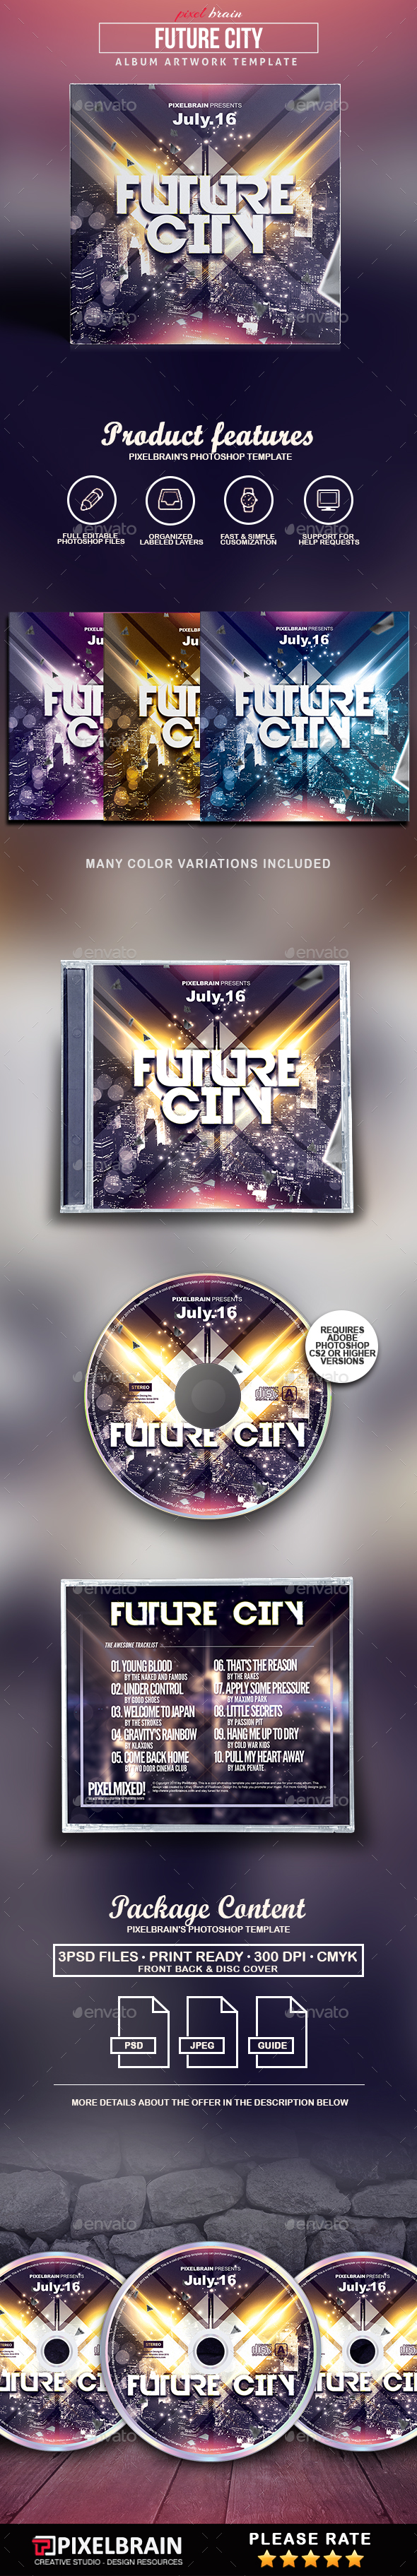 Future City CD Cover Artwork - CD & DVD Artwork Print Templates